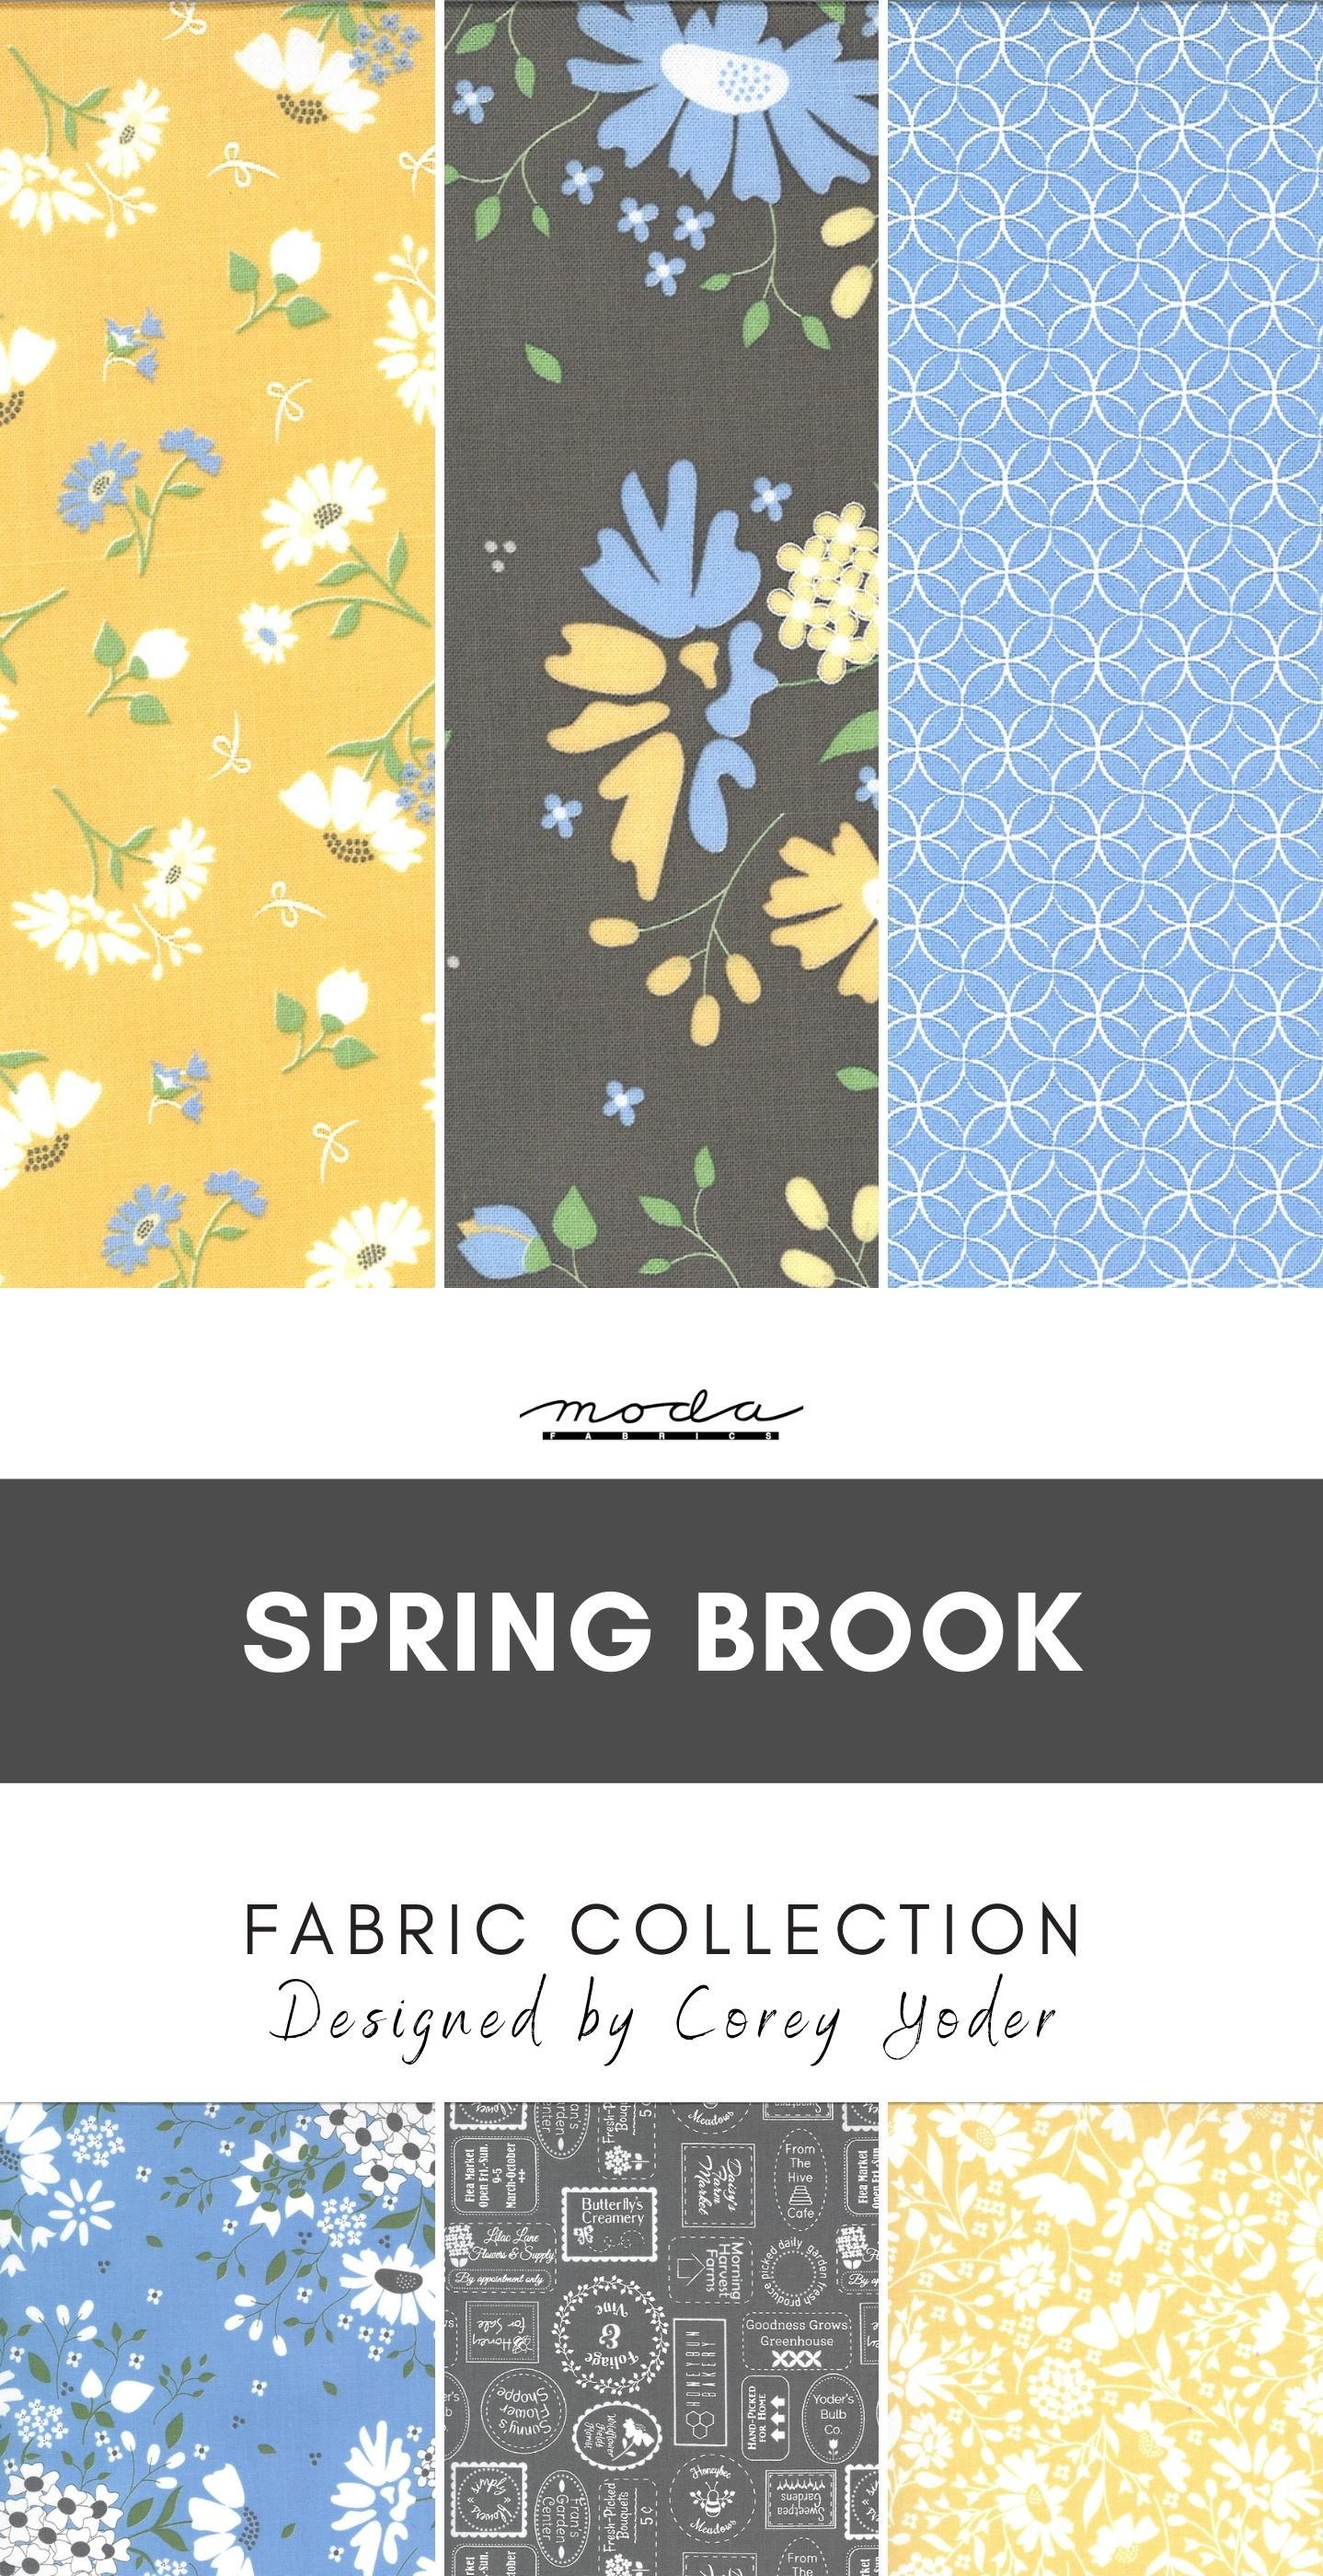 Spring Brook Fabric Collection